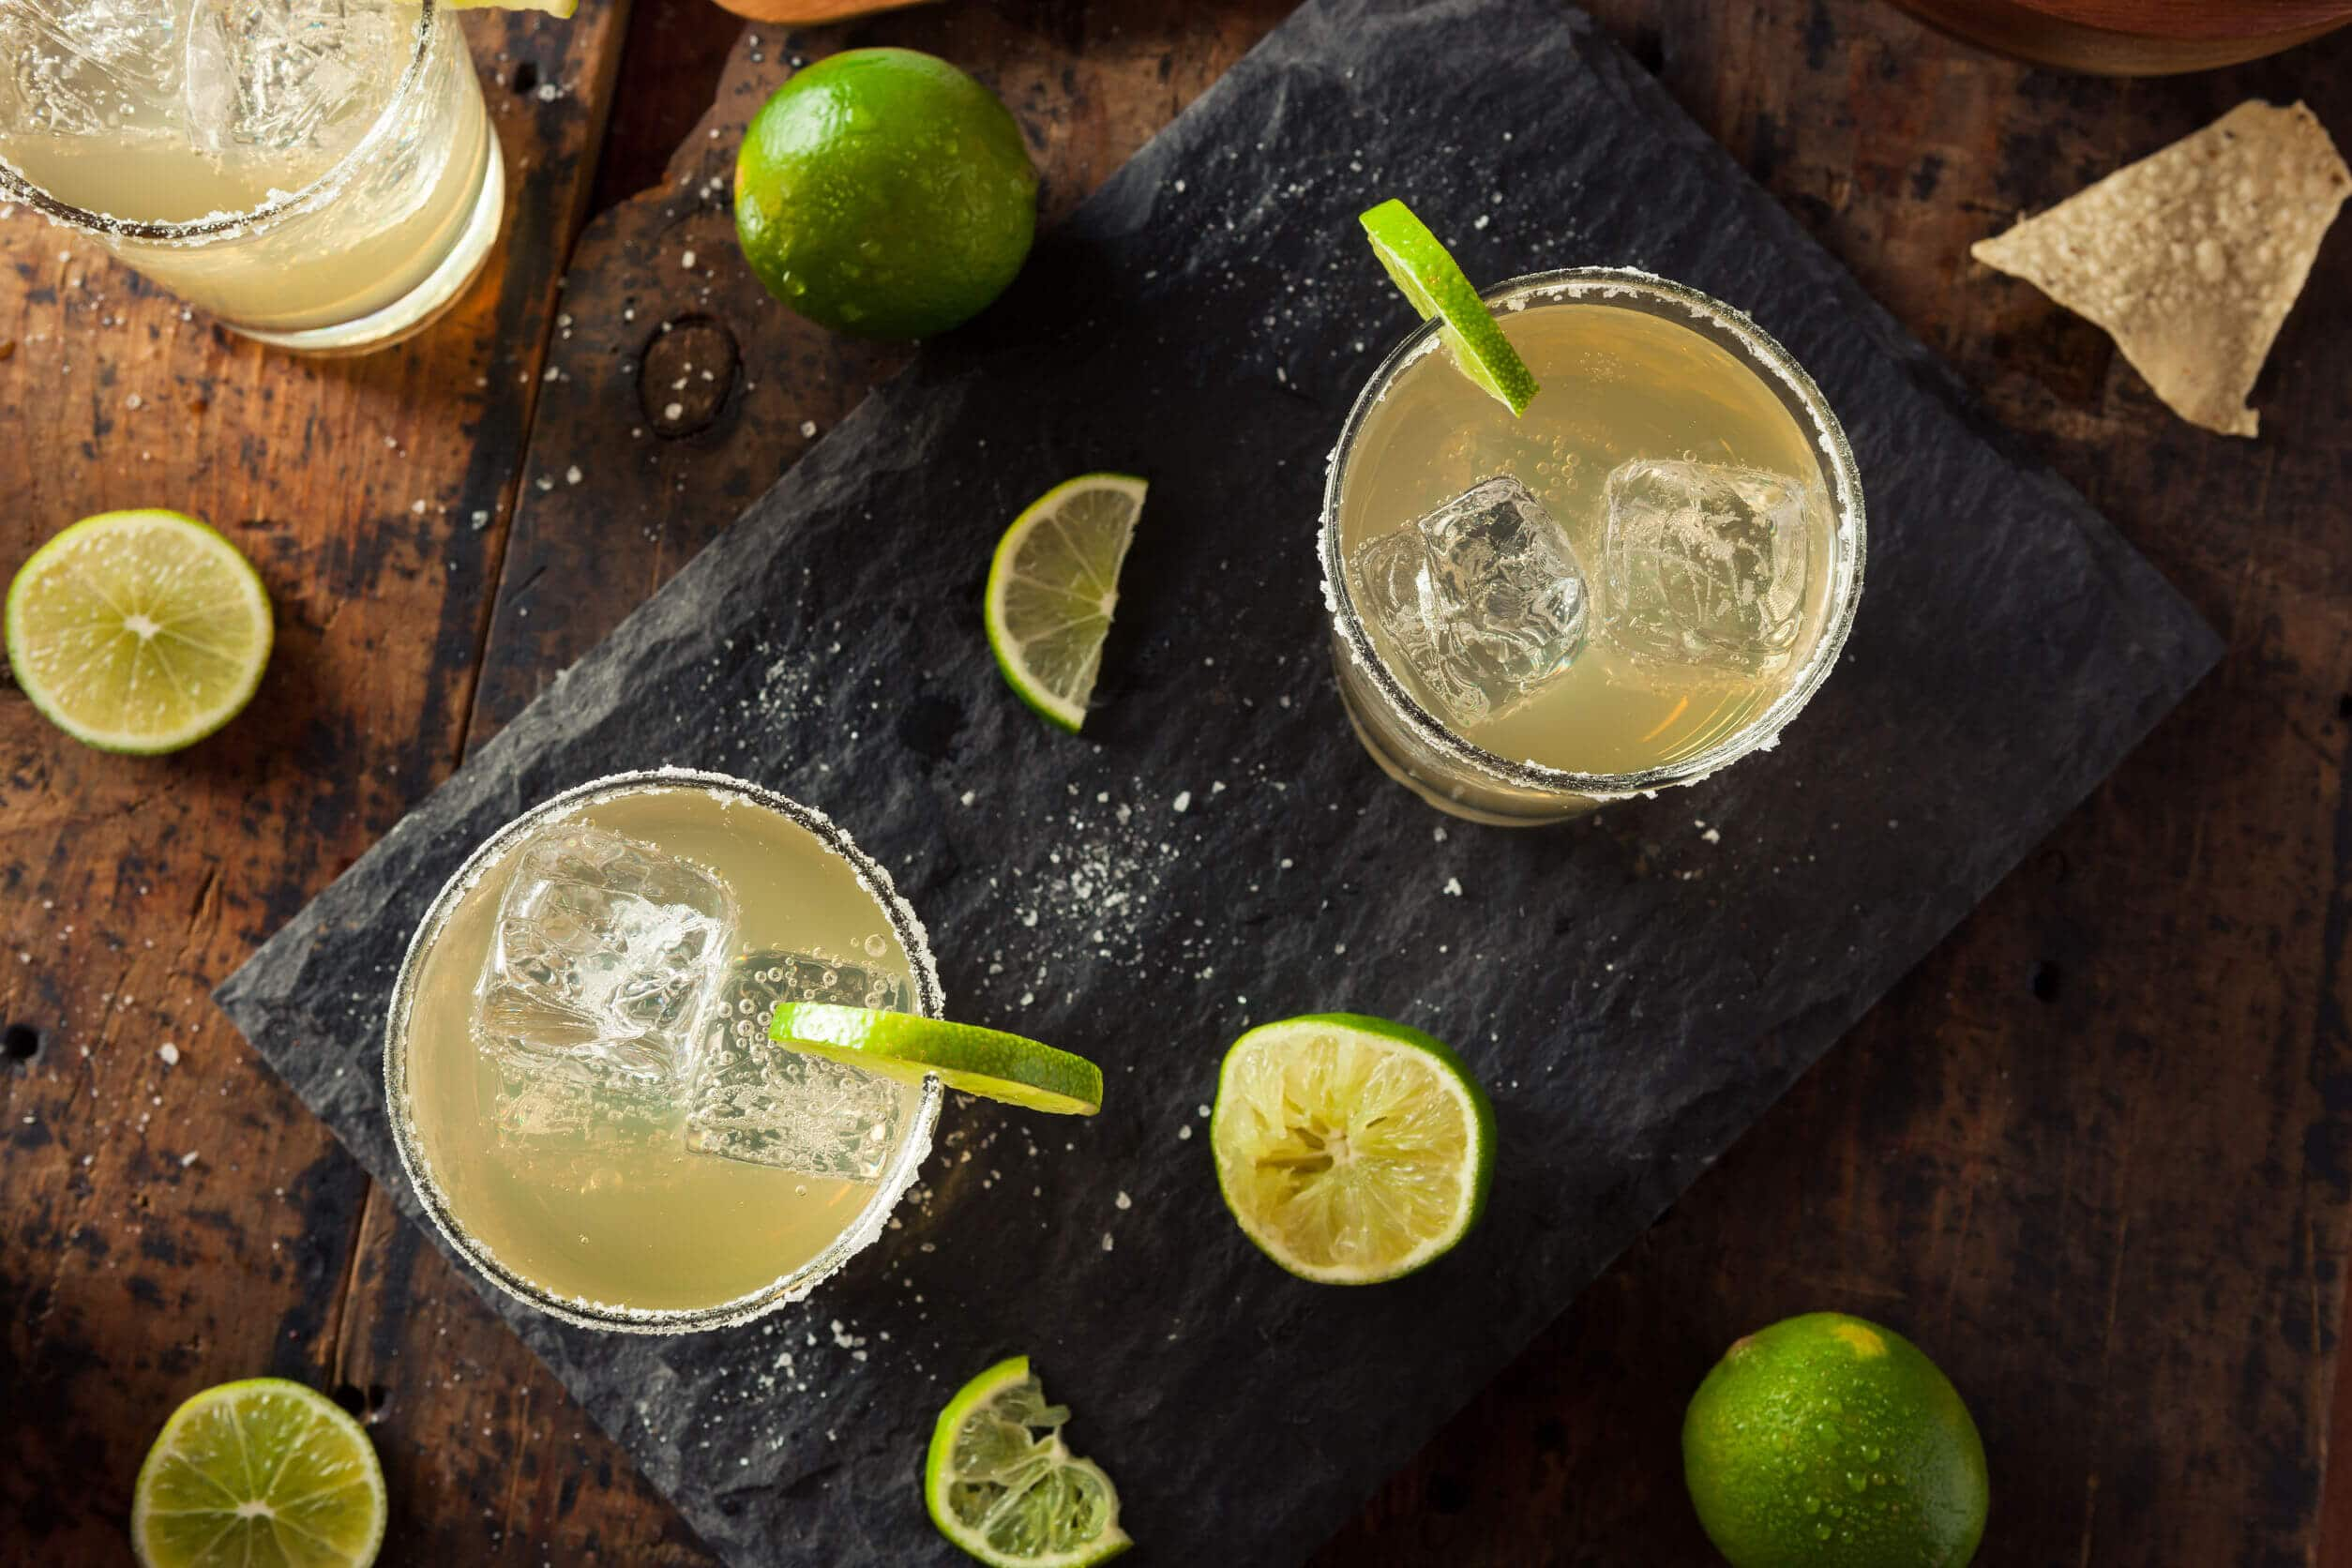 Two margaritas on the rocks on a stone serving platter surrounded by limes